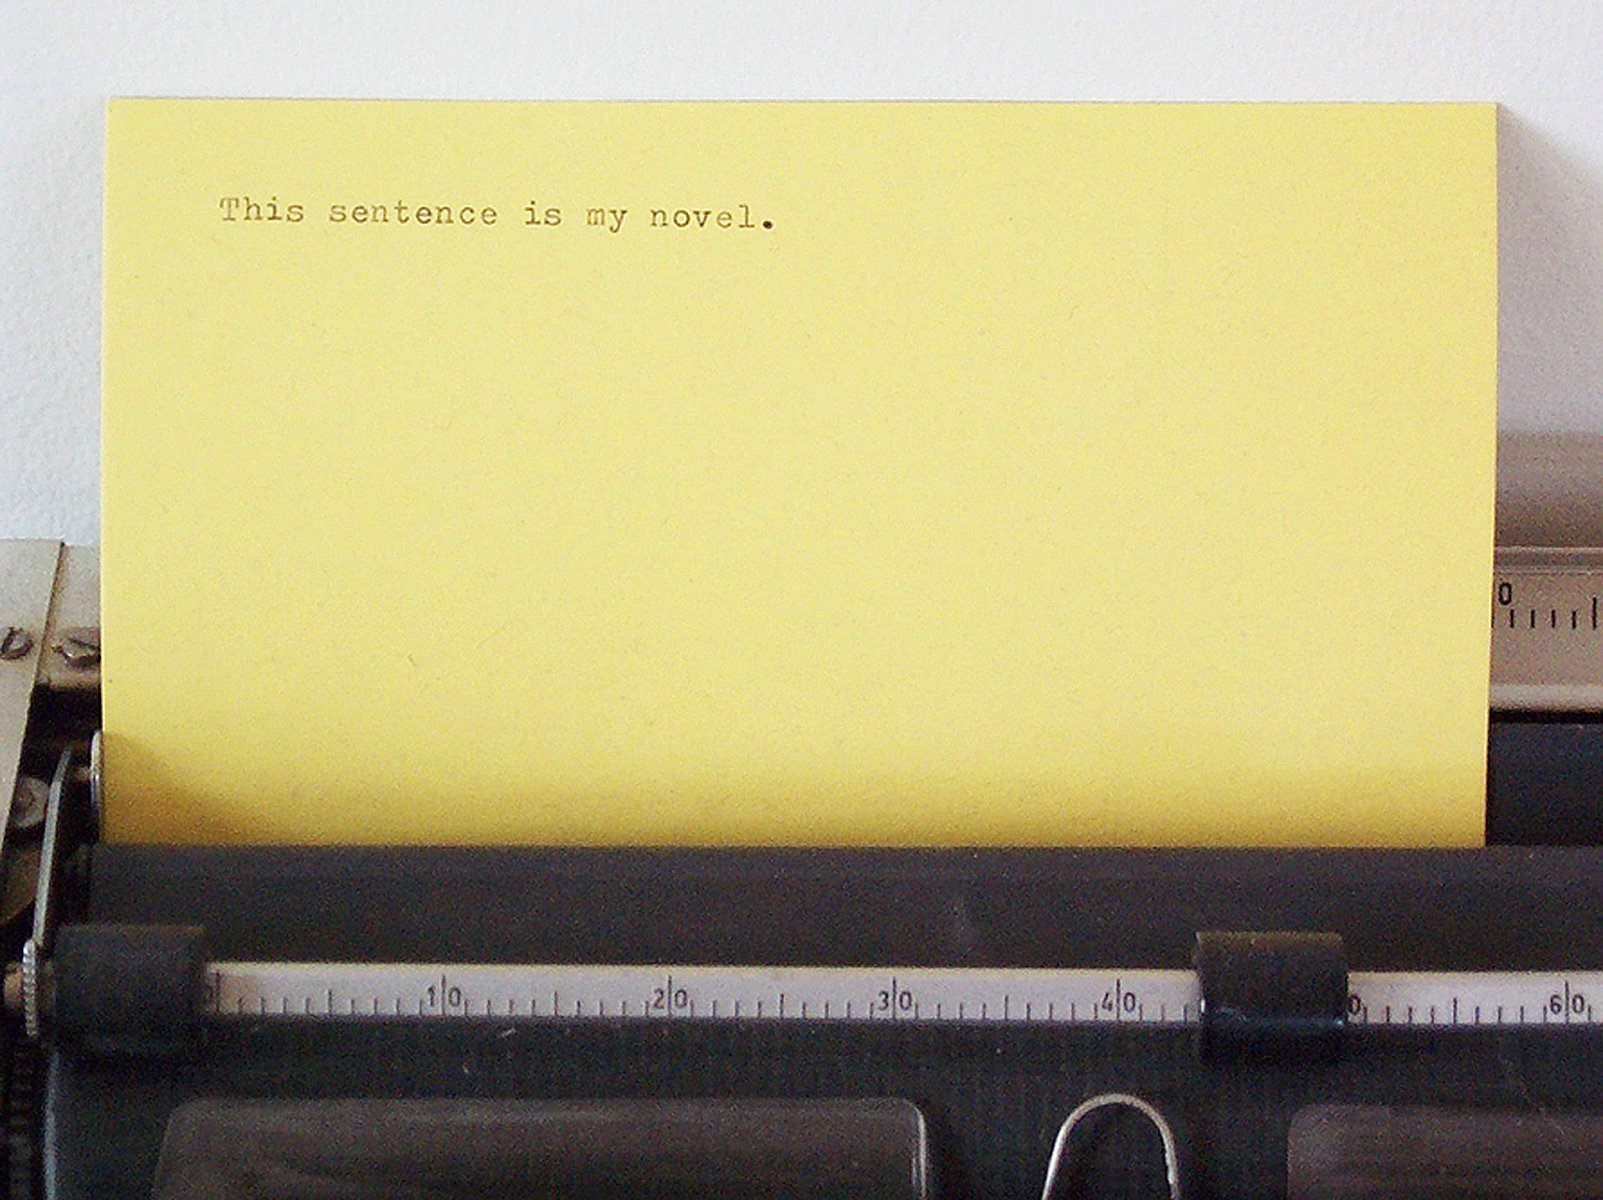 """On a yellow card inserted in a typewriter is typed, """"This sentence is my novel."""""""